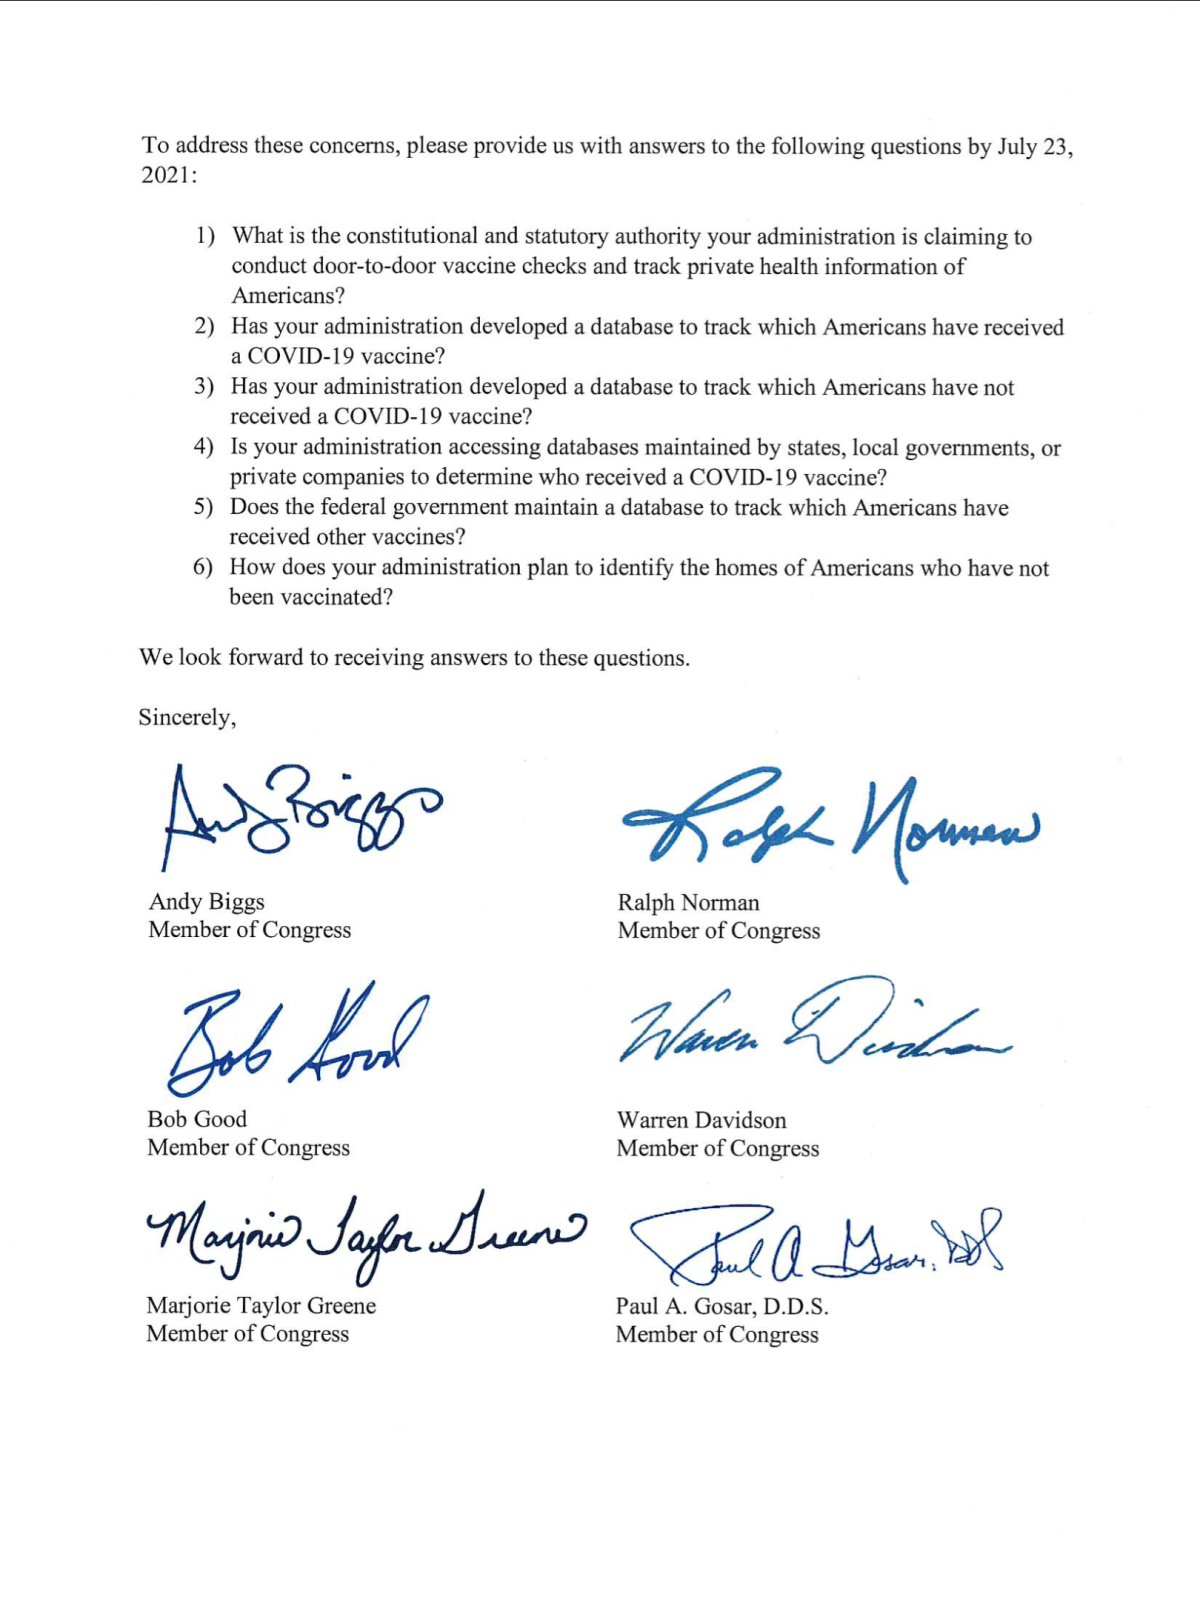 32 Members of Congress Raise Critical Privacy Questions; Demand Answers on Biden Door-to-Door Vaccine Checks (by July23rd)